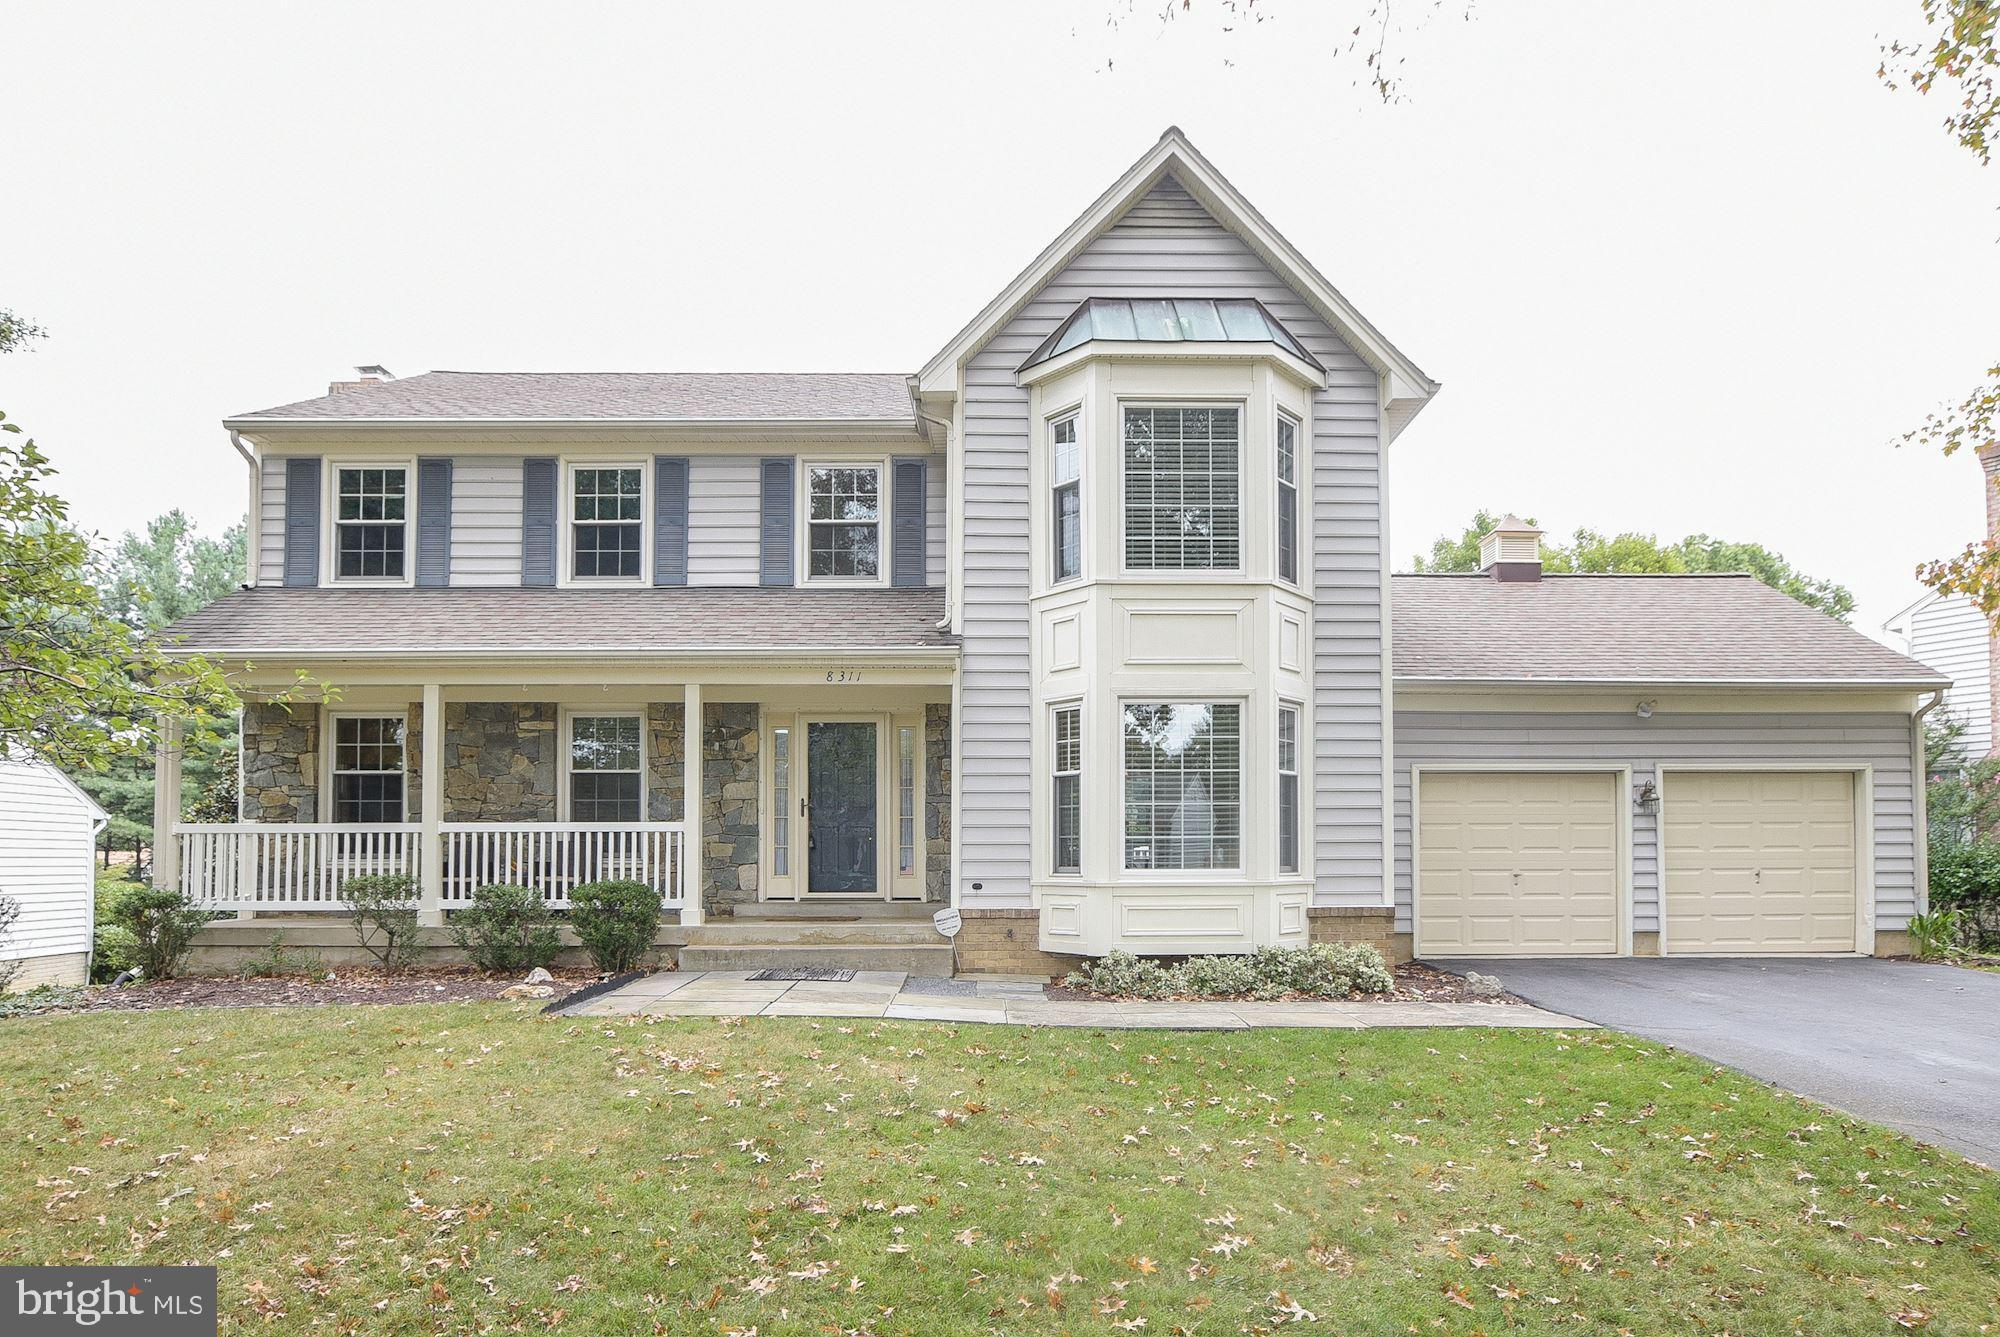 8311 FRONTWELL CIRCLE, MONTGOMERY VILLAGE, MD 20886